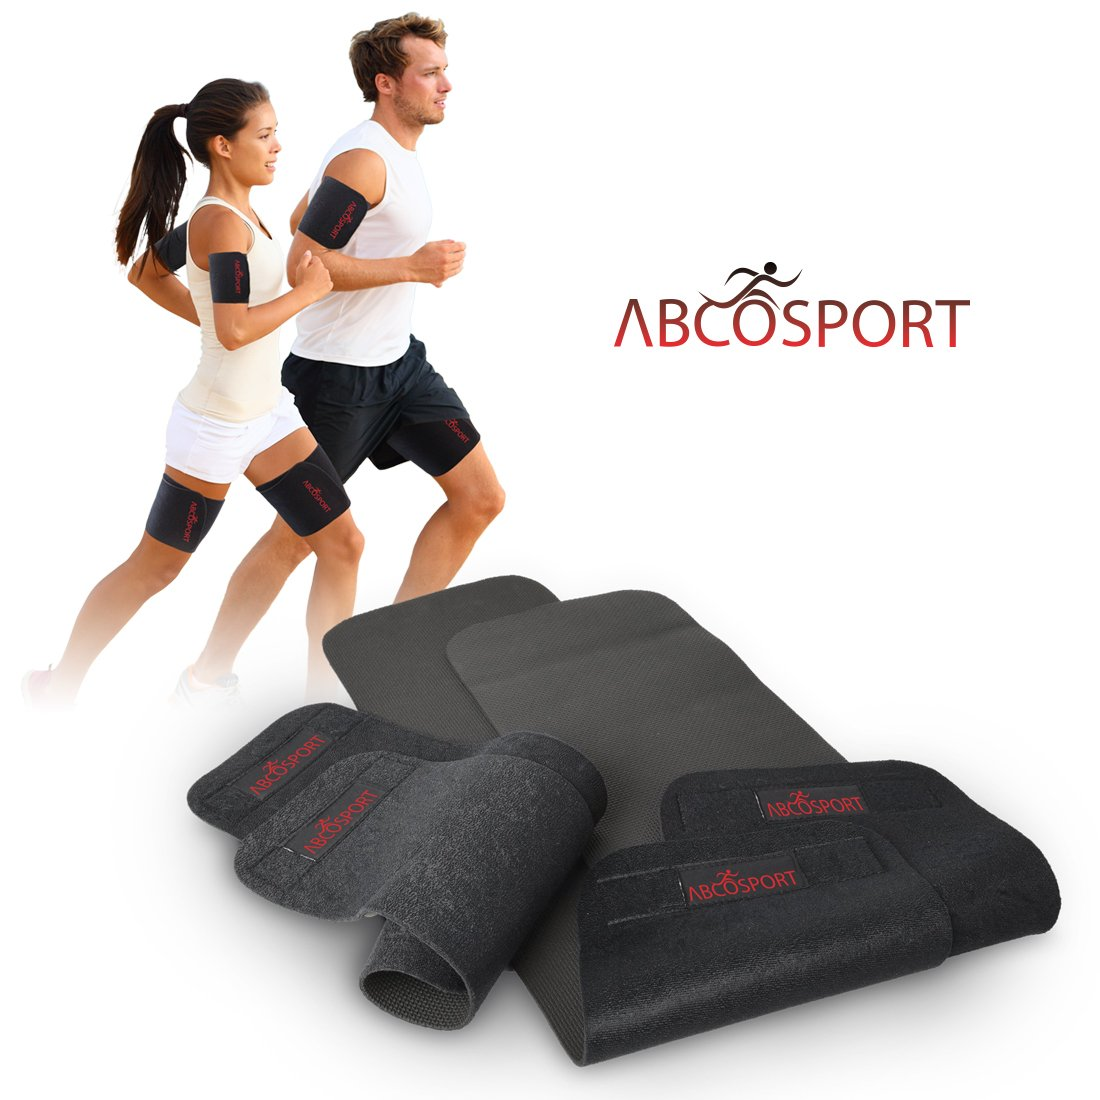 Body Wraps for Arms and Thighs - To Lose Fat & Reduce Cellulite - Best Adjustable Slimmers with Anti-Slip Grid Technology - Use Home or Street - Repels Sweat - 4 Piece Kit (4 Piece Set - Small) by Abco Tech